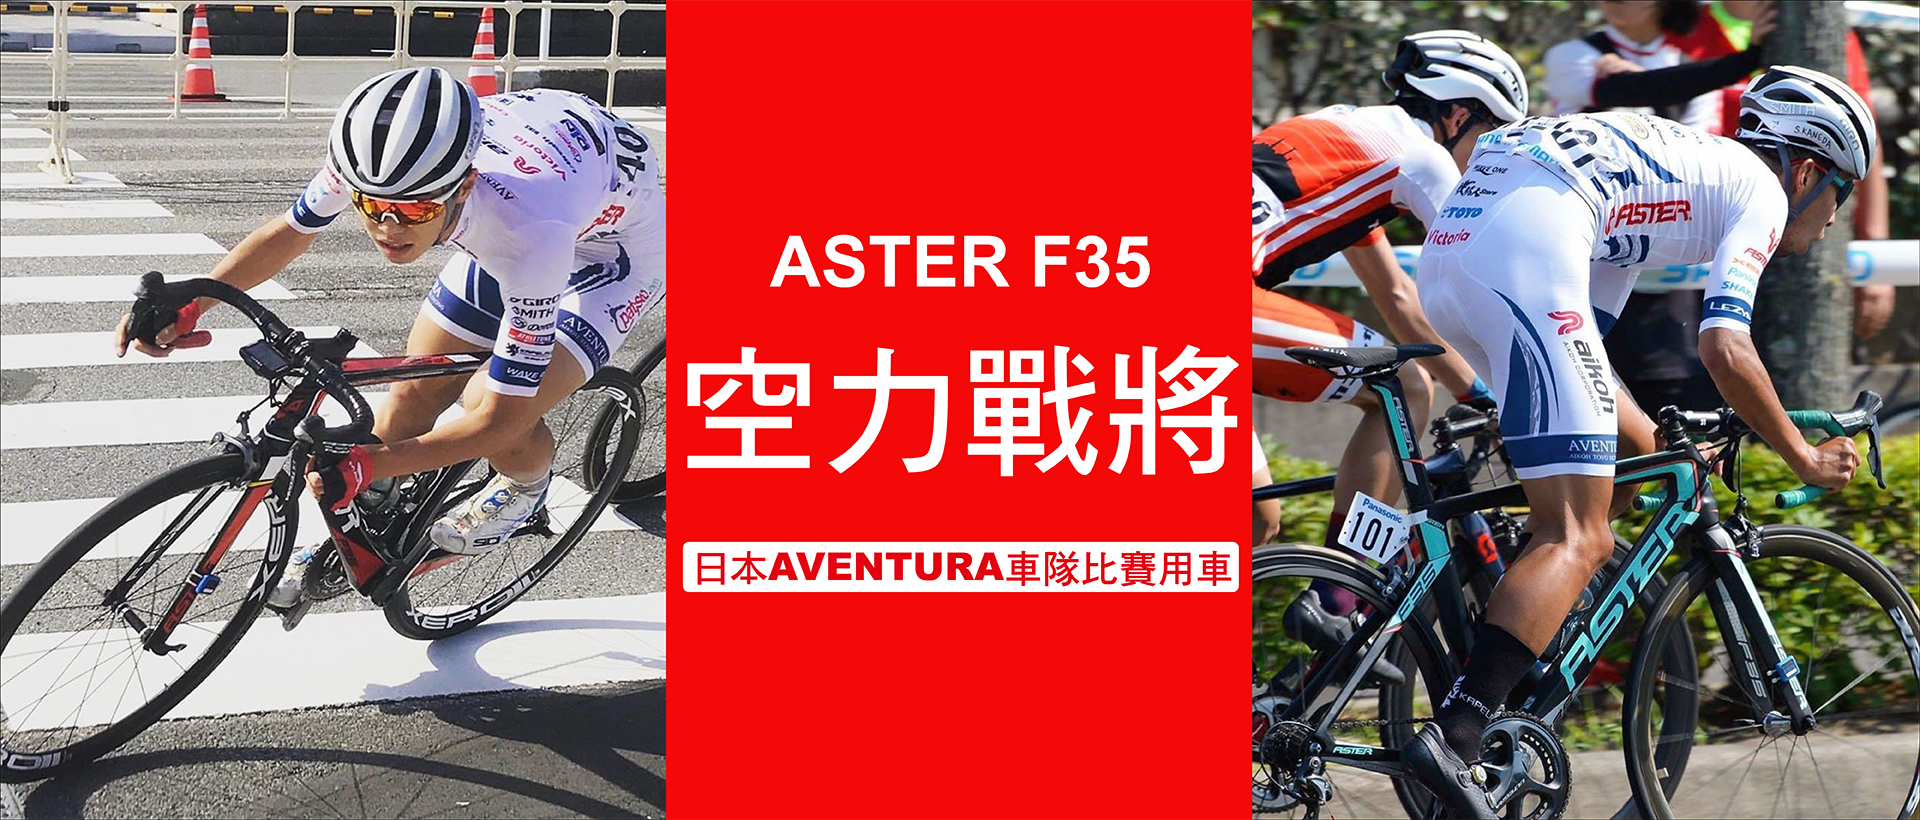 ASTER F35